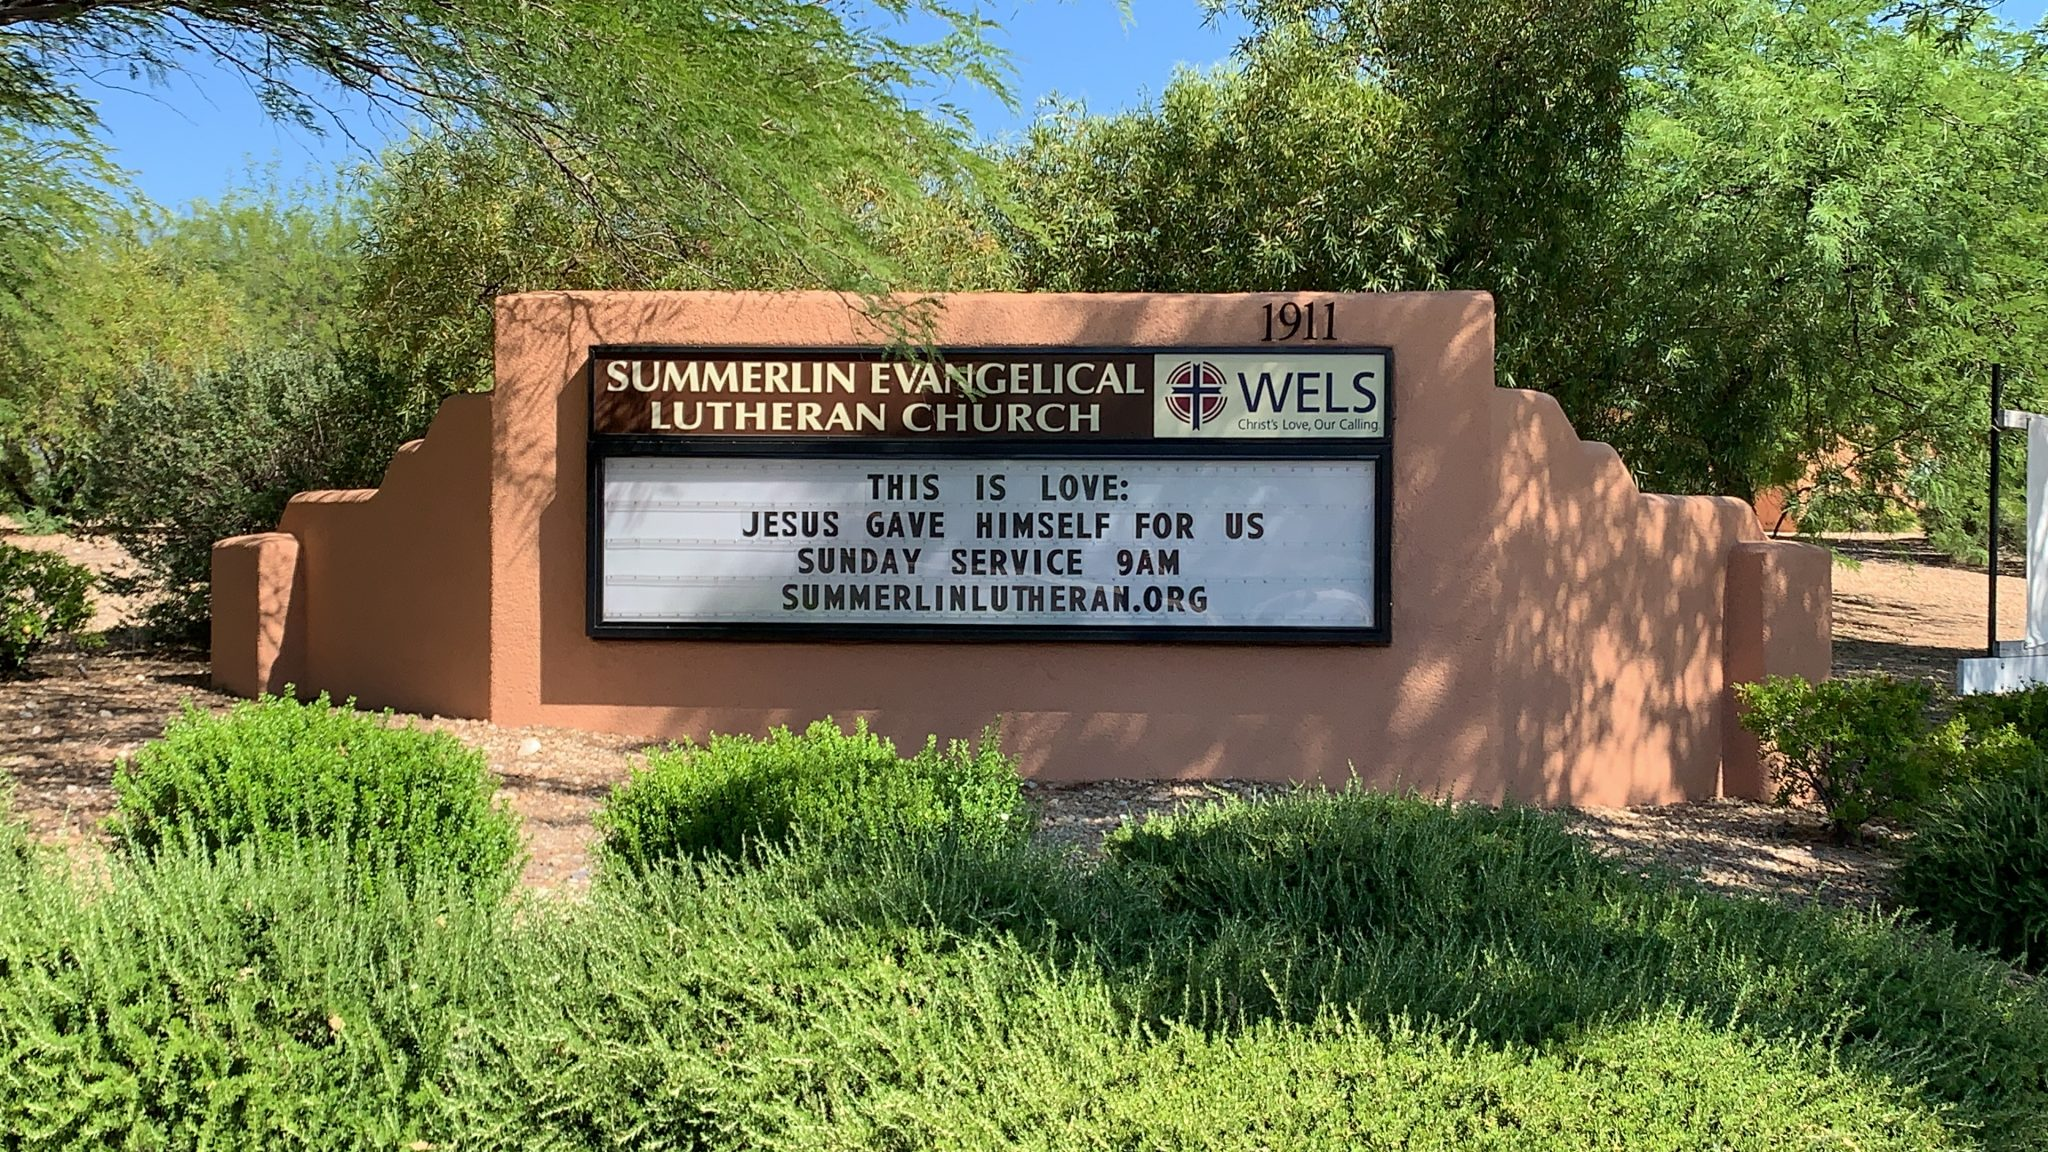 Summerlin Evangelical Lutheran Church